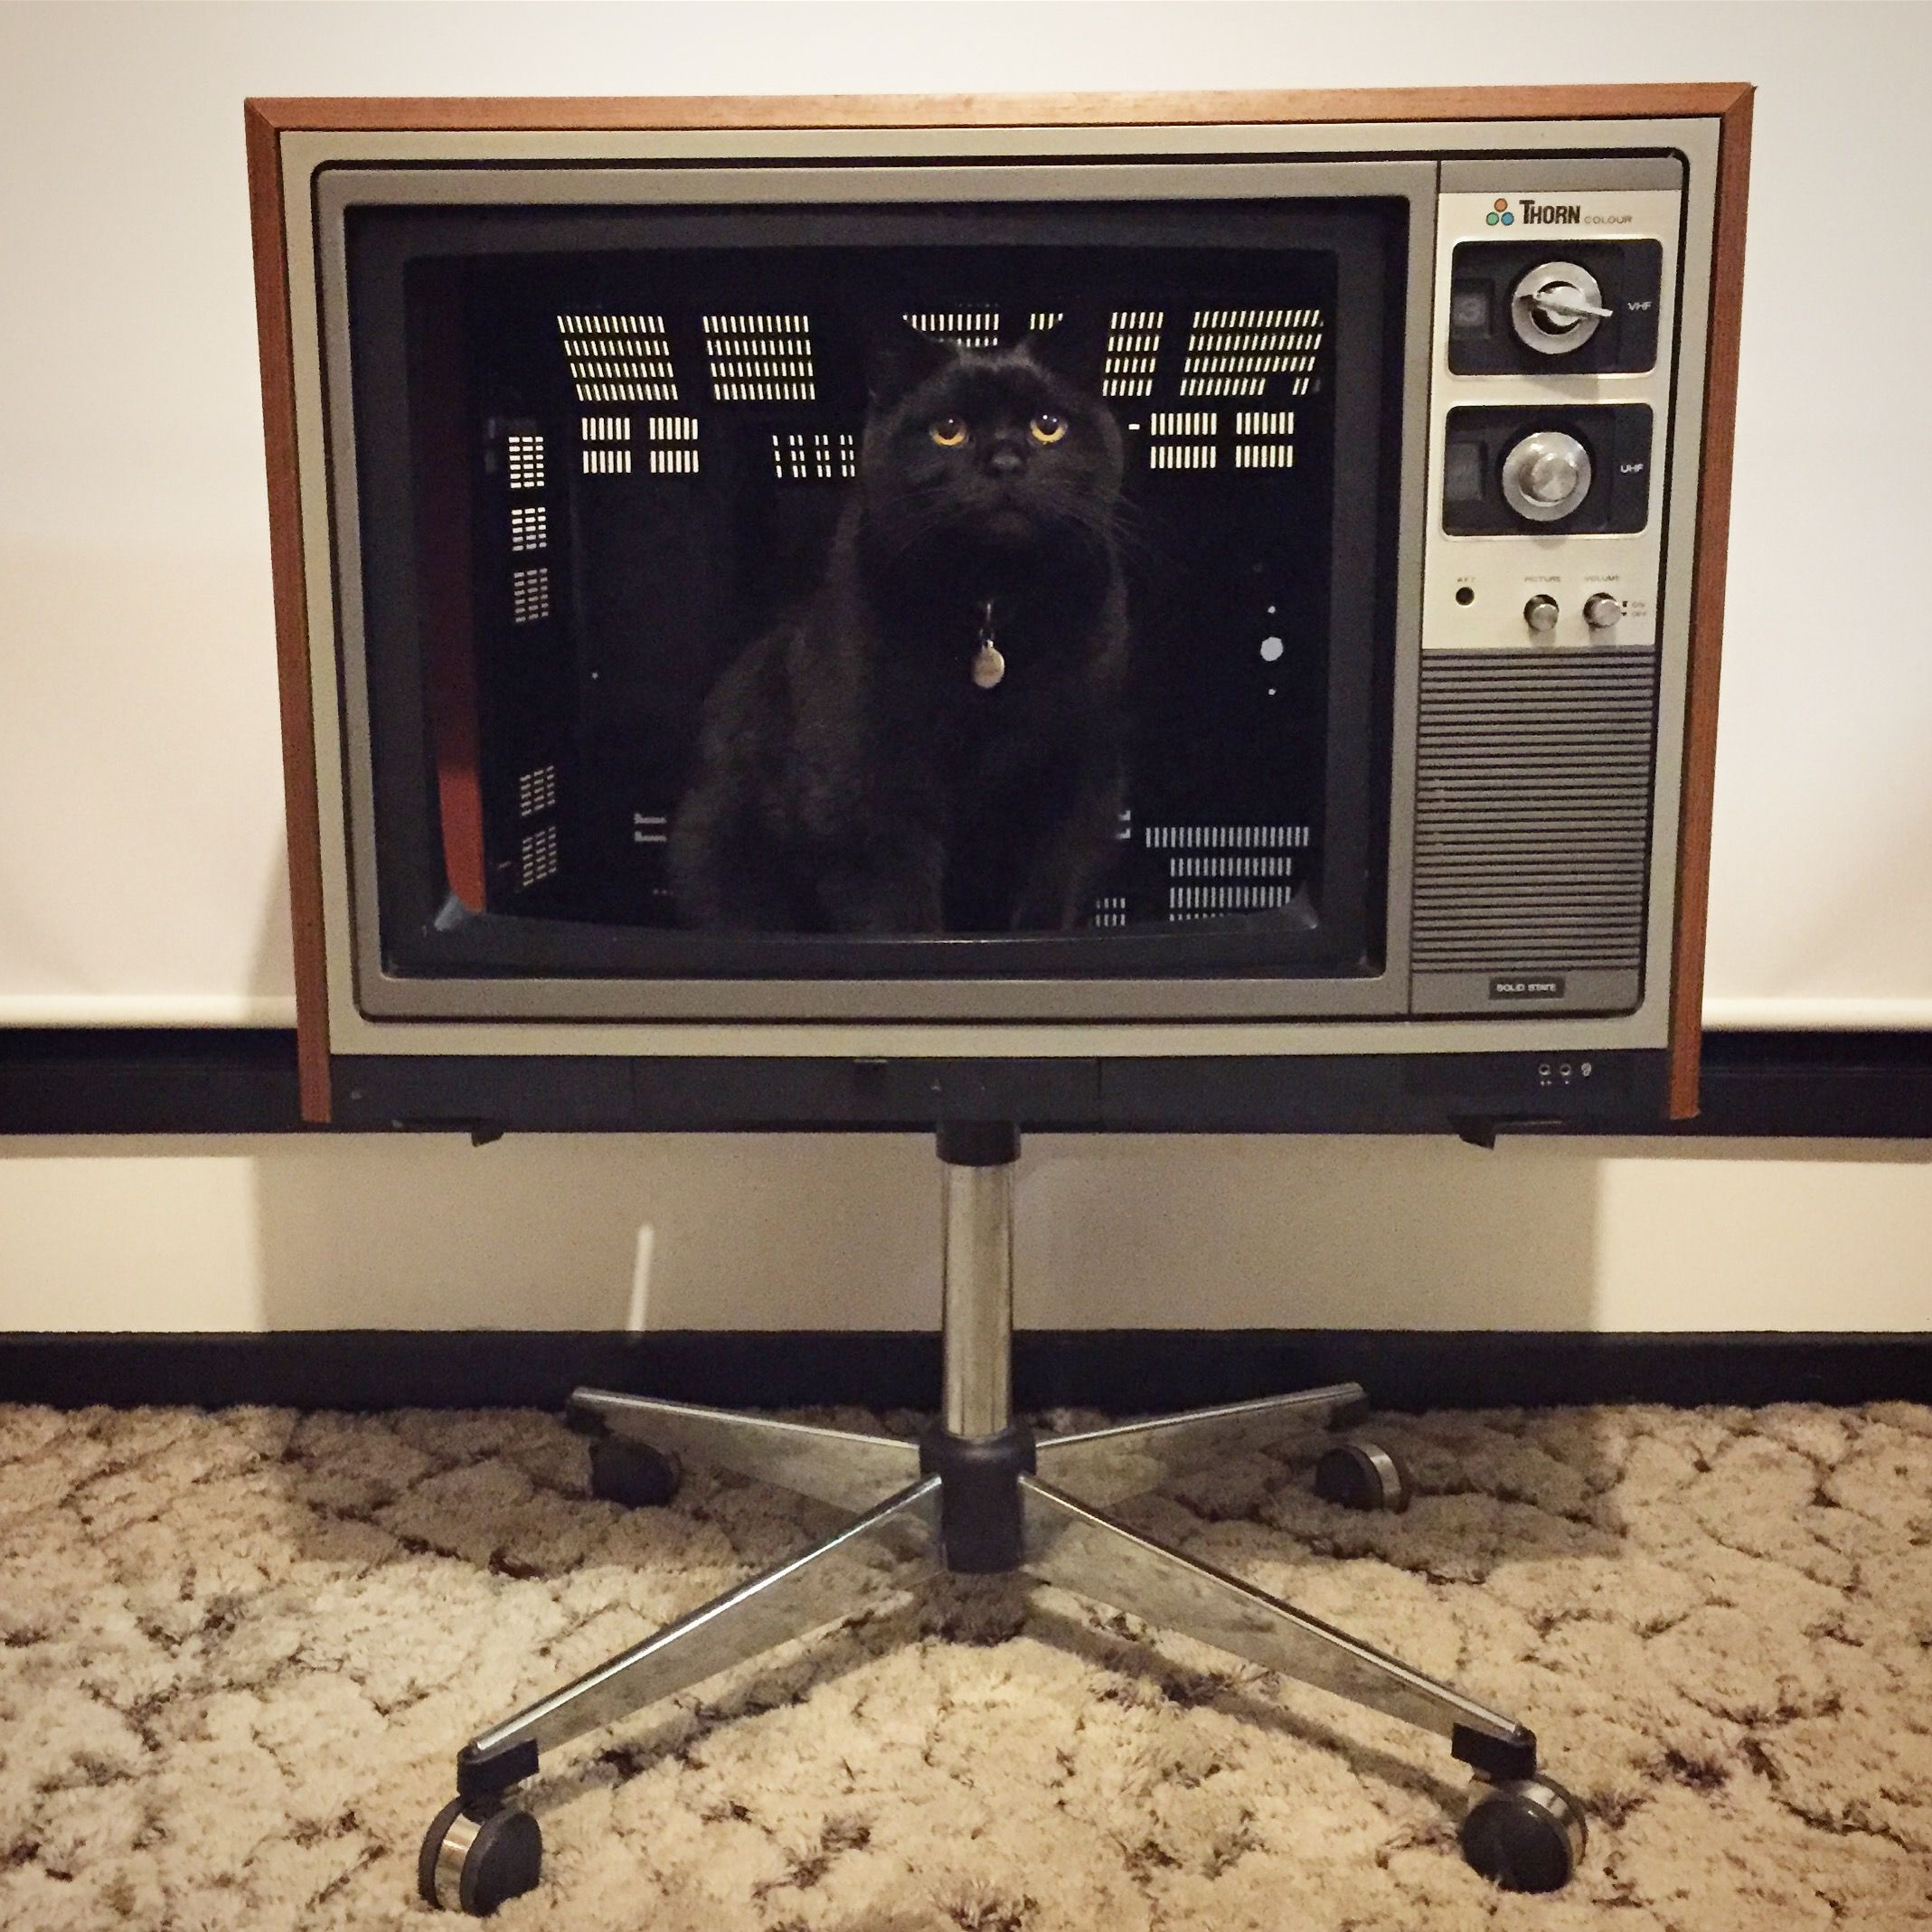 """My childhood colour """"Thorn"""" television circa early 1980's"""